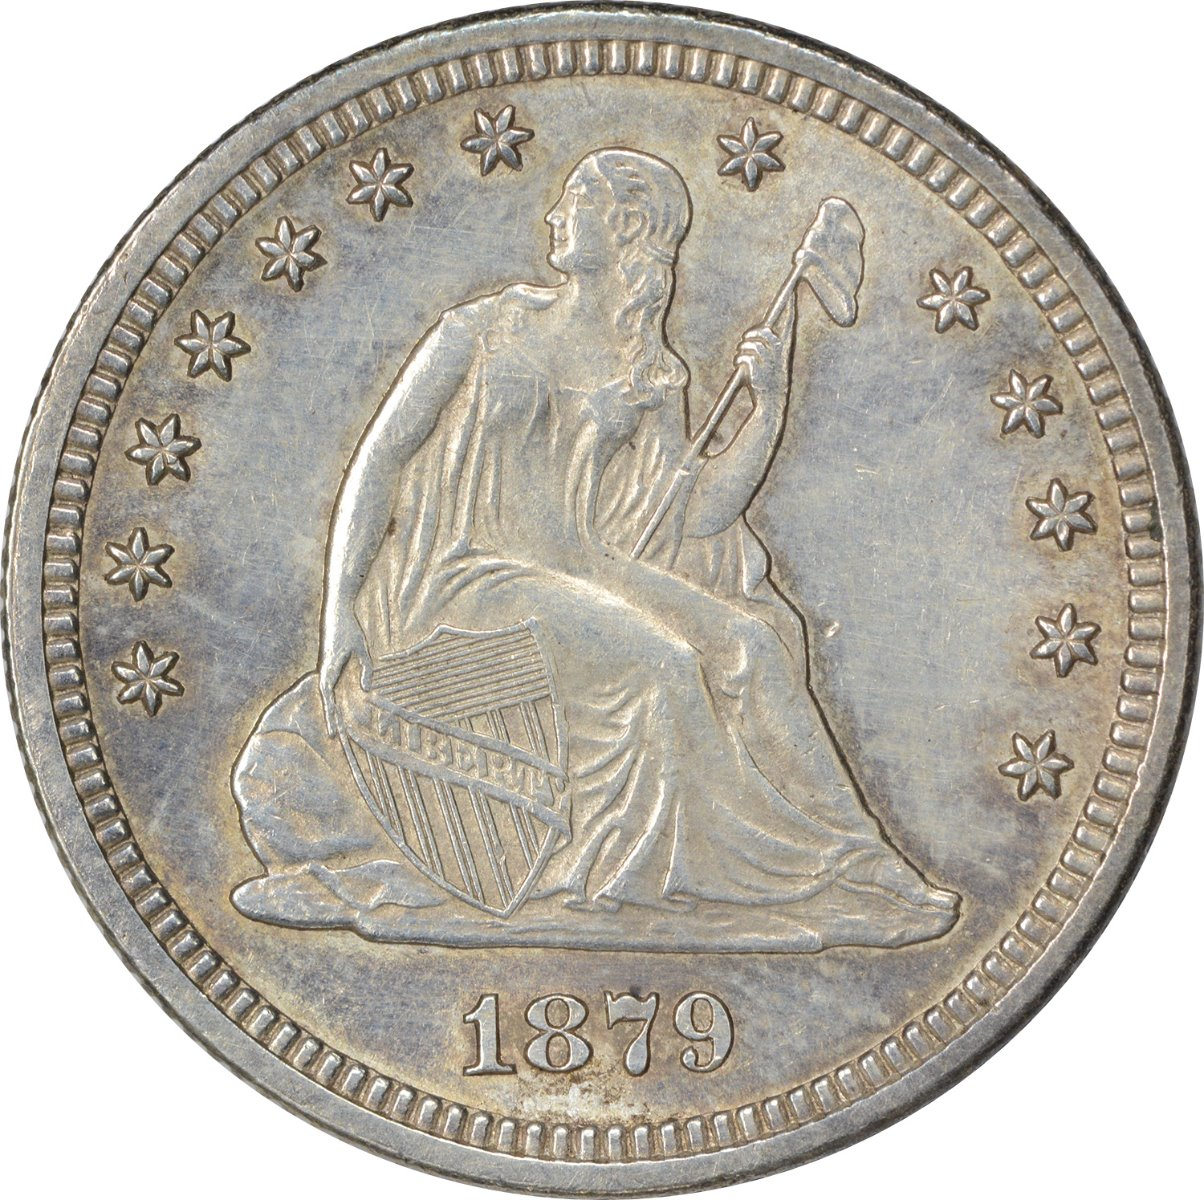 Liberty Seated Silver Quarters